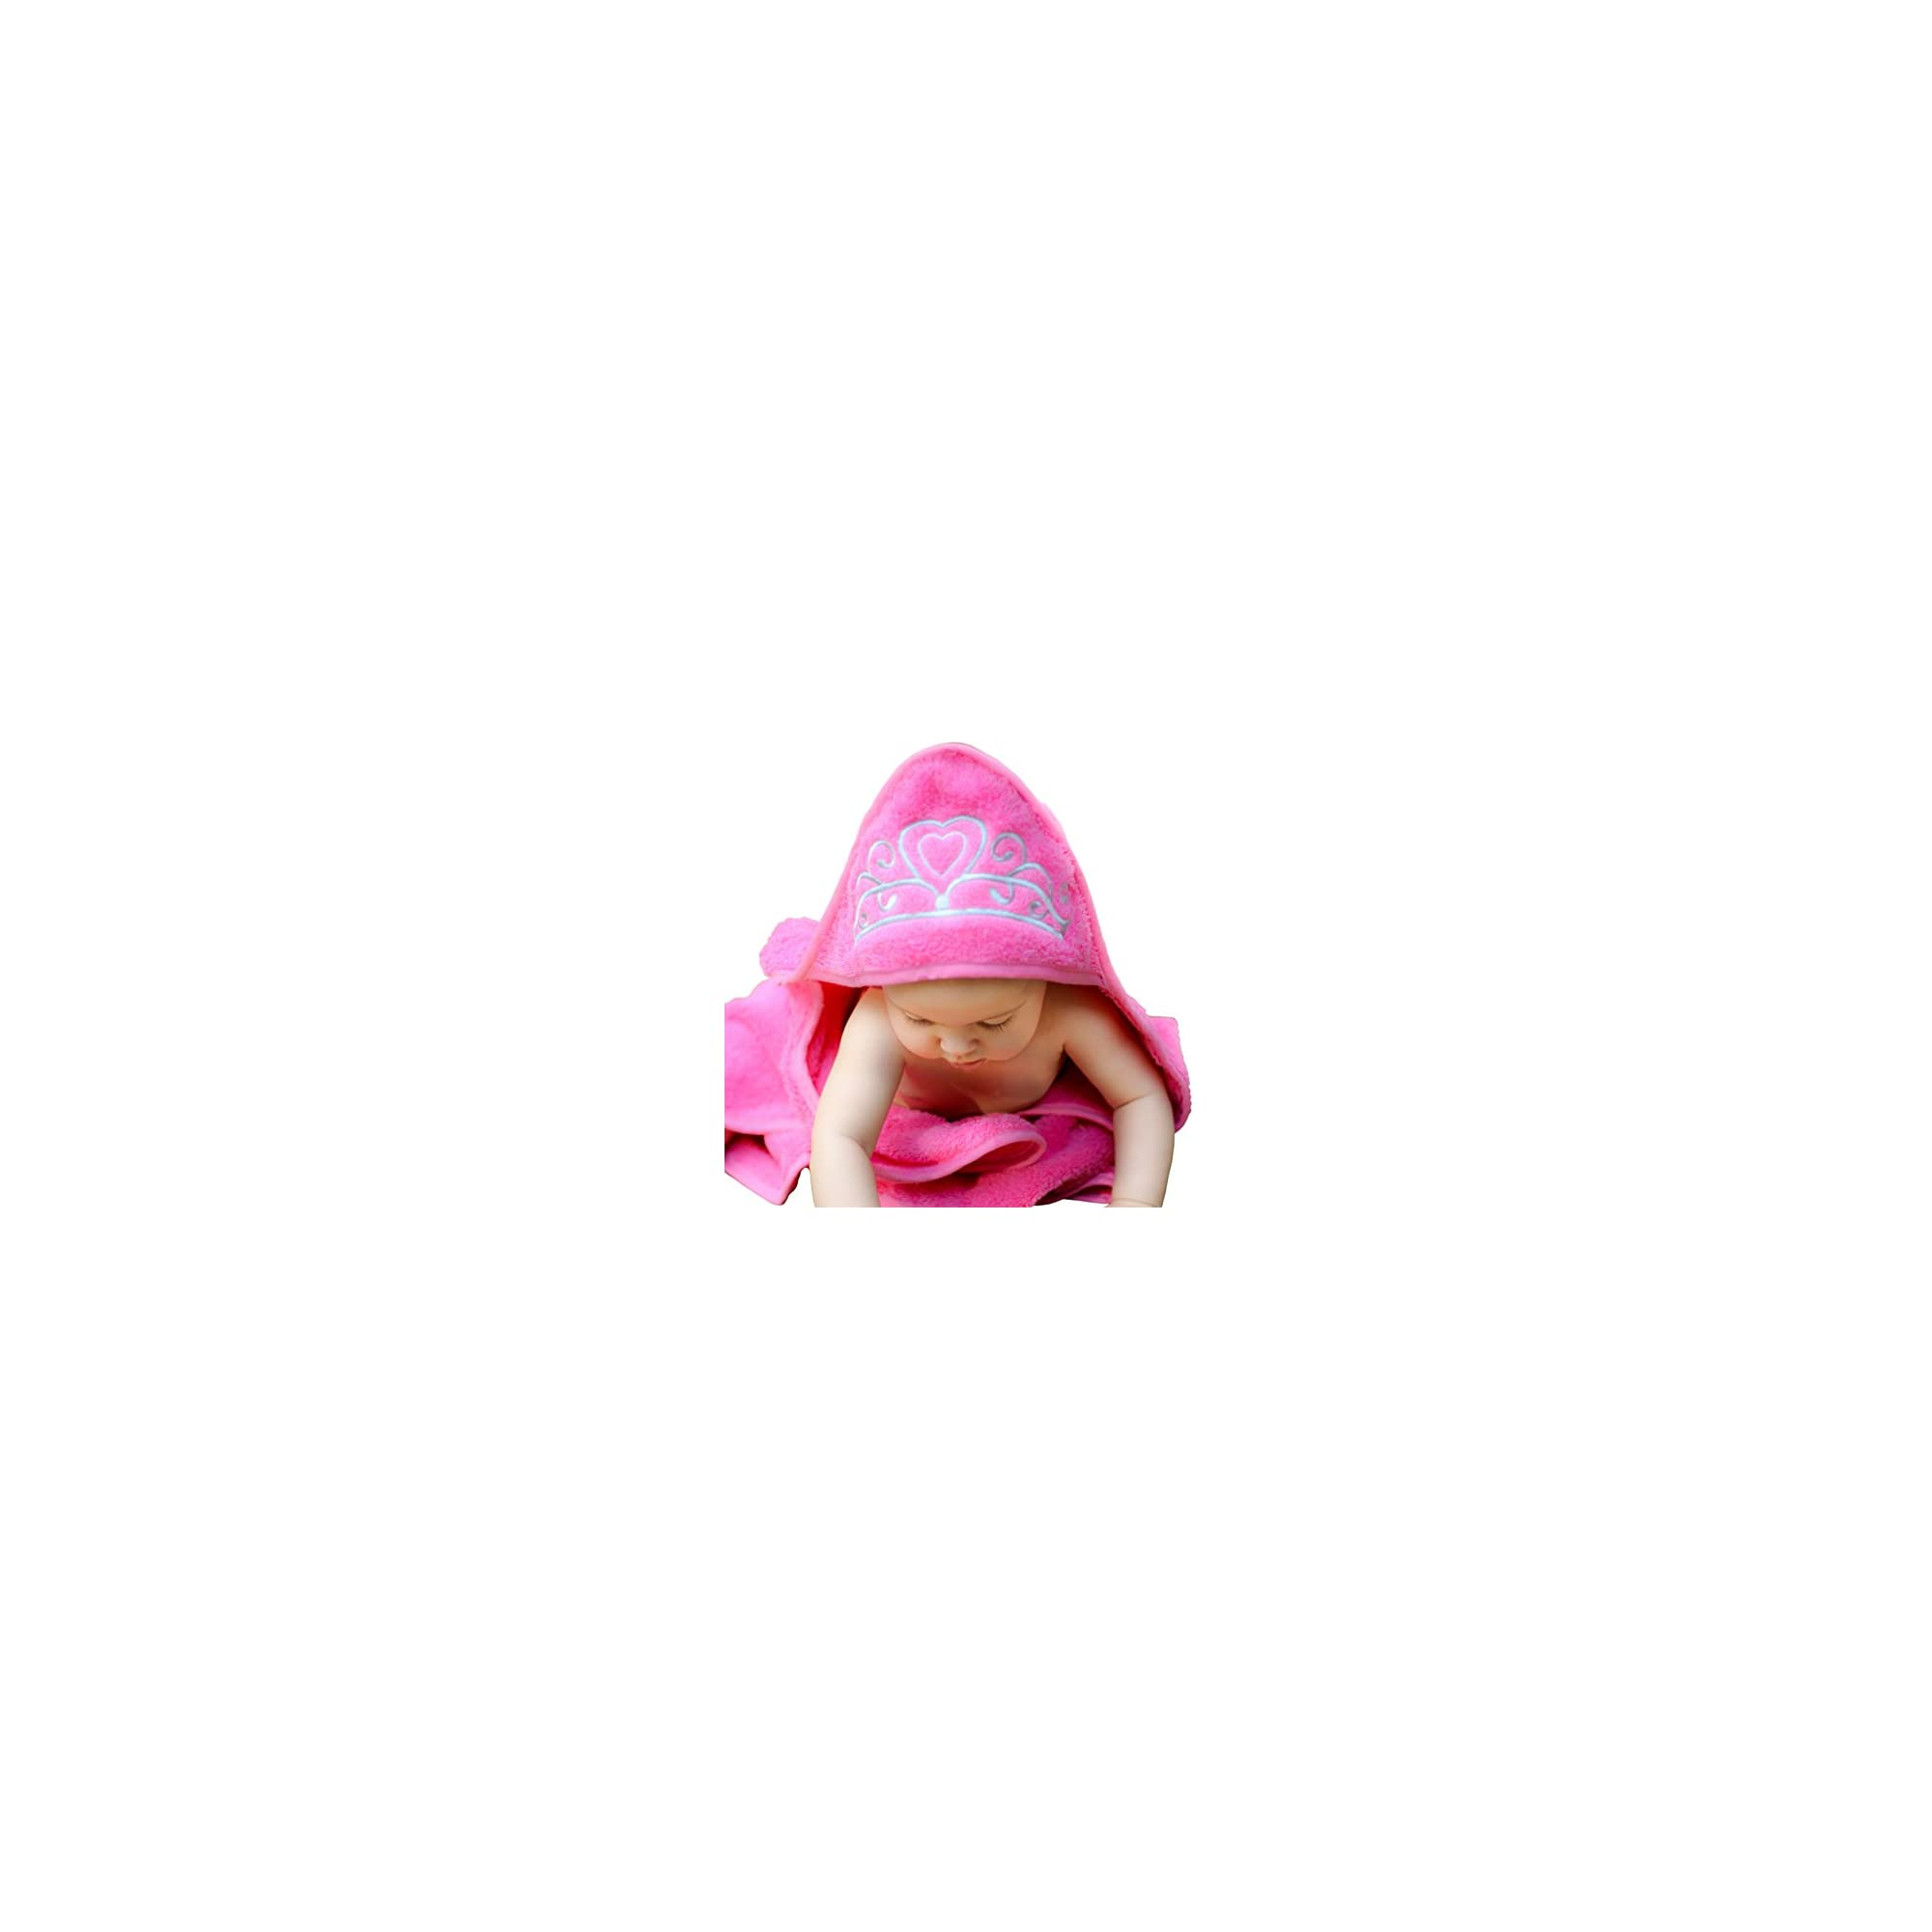 Princess Hooded Baby Towel (Pink), 29″ x 29″, Plush and Absorbent Luxury Bath, Beach, Pool Towel! 600 GSM, 100% Cotton